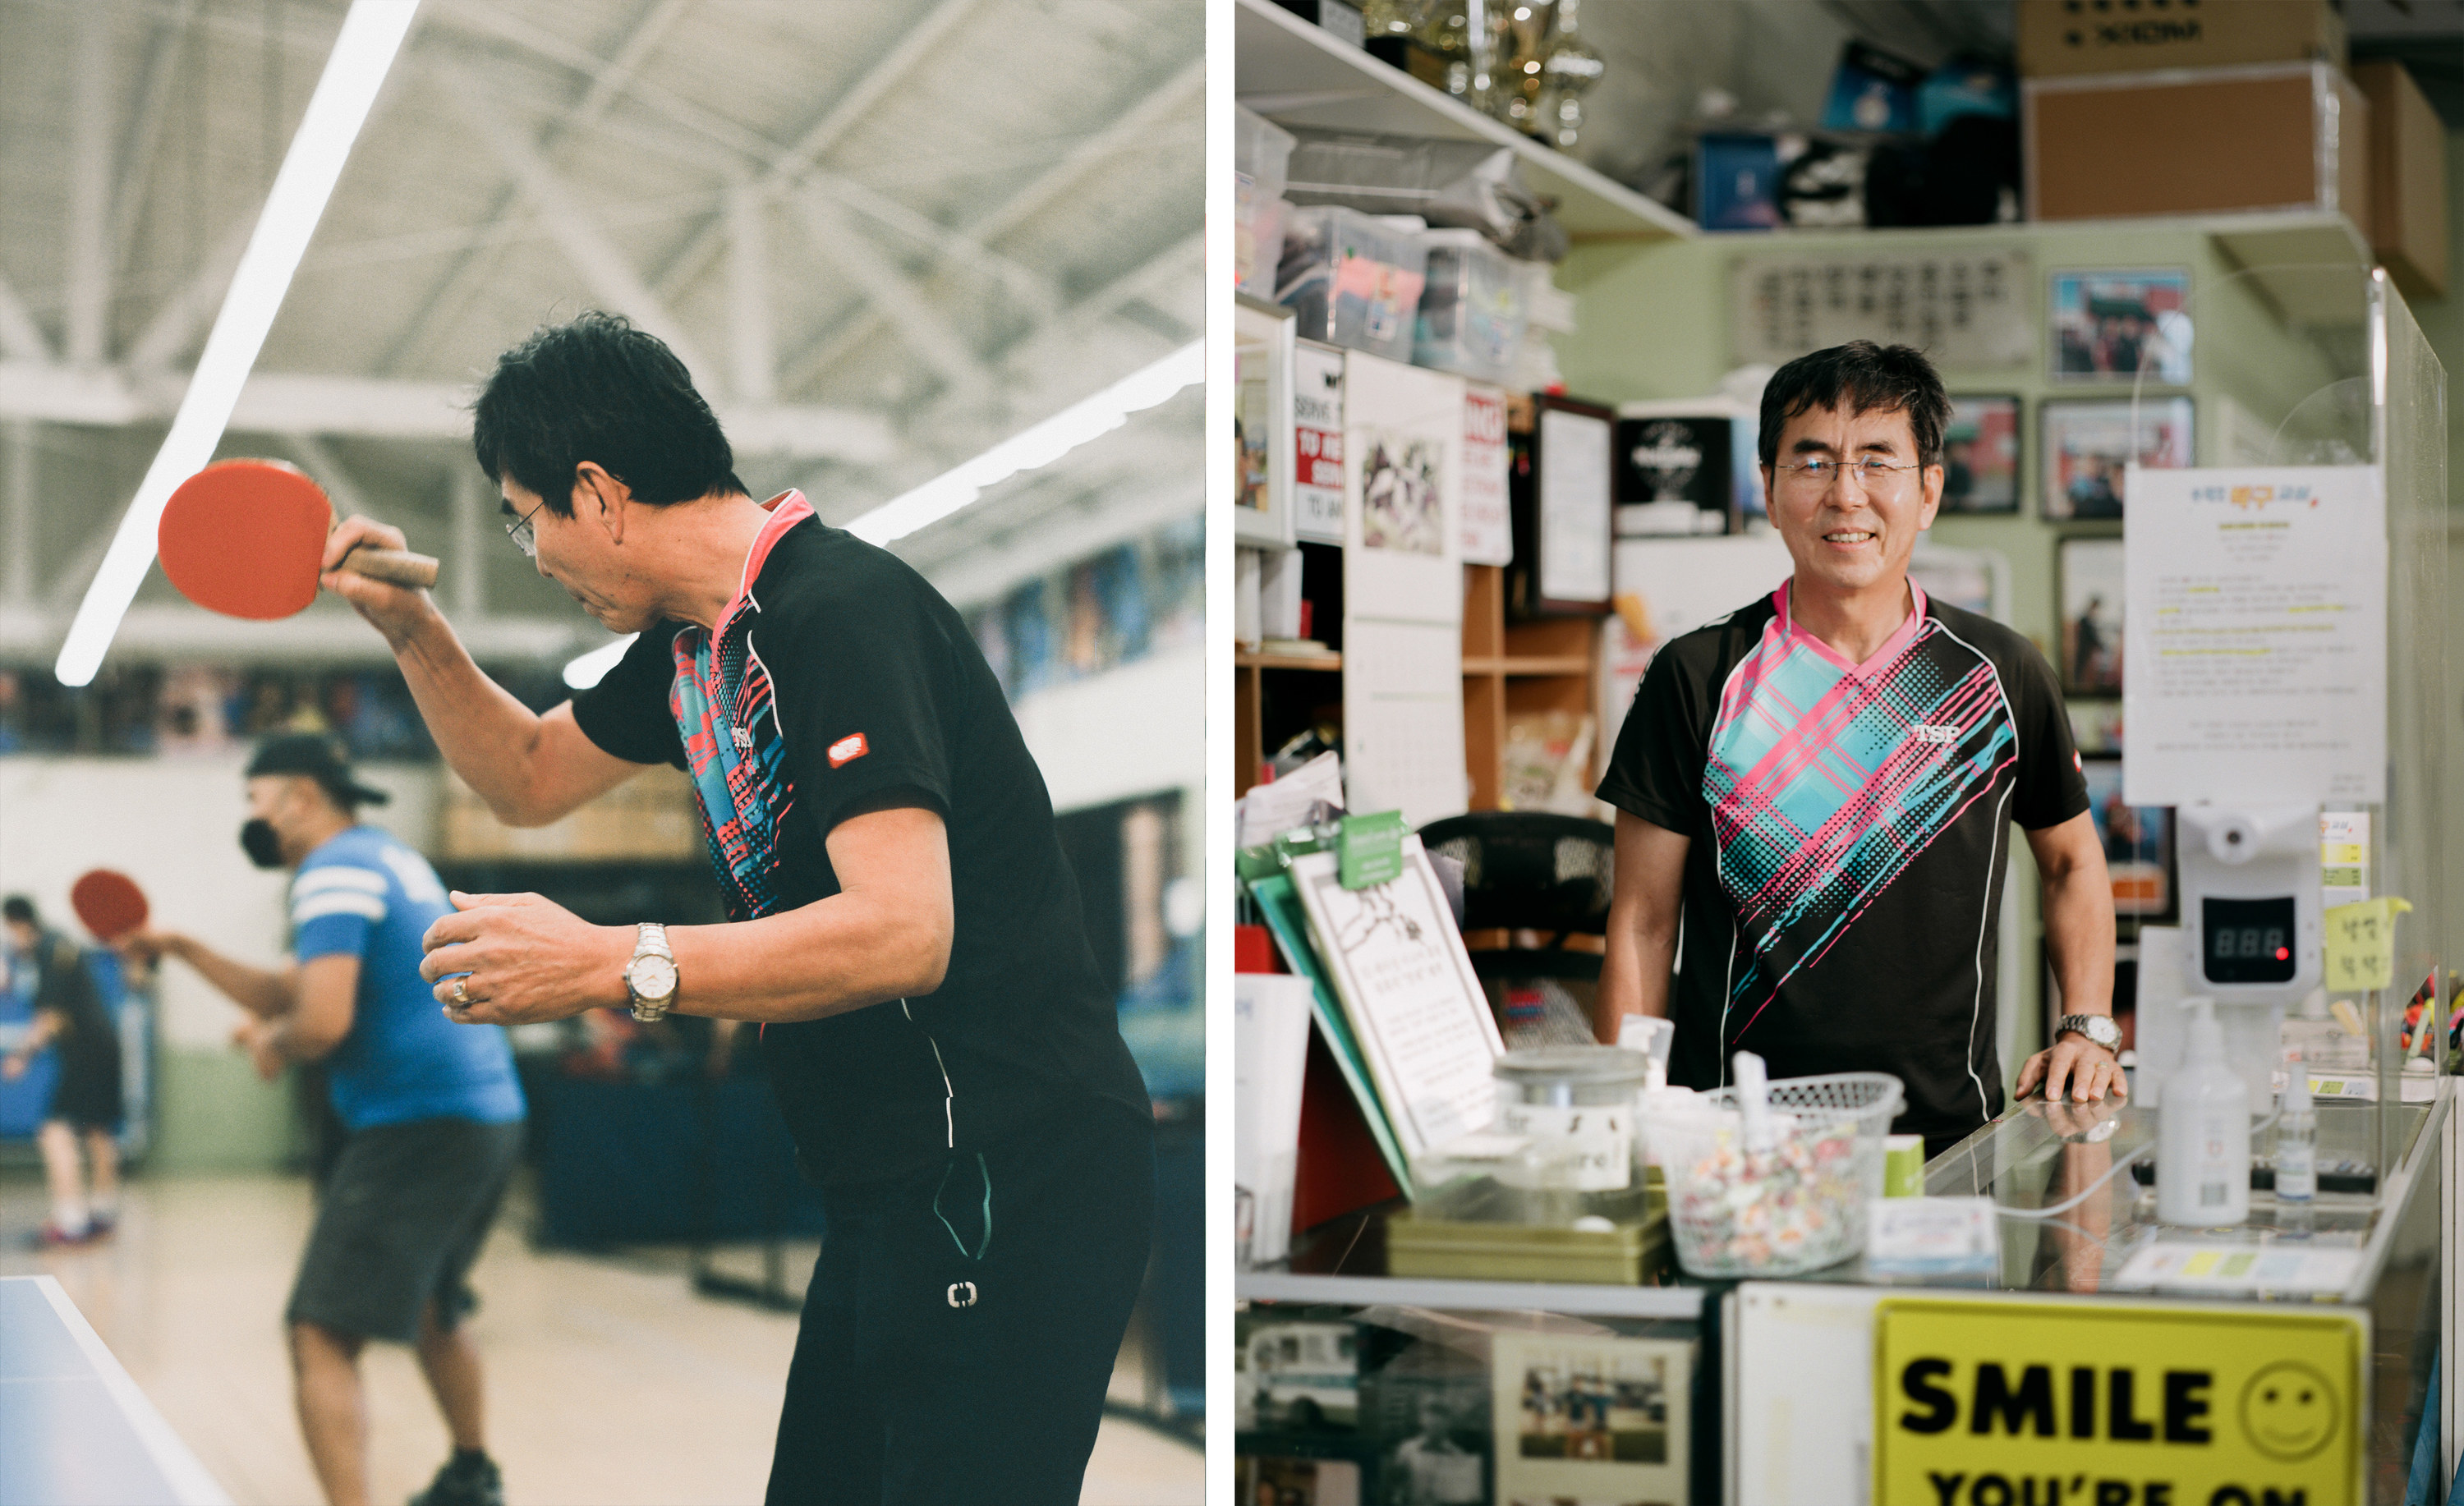 Left, a man in sportswear playing table tennis, right, the same man behind the counter